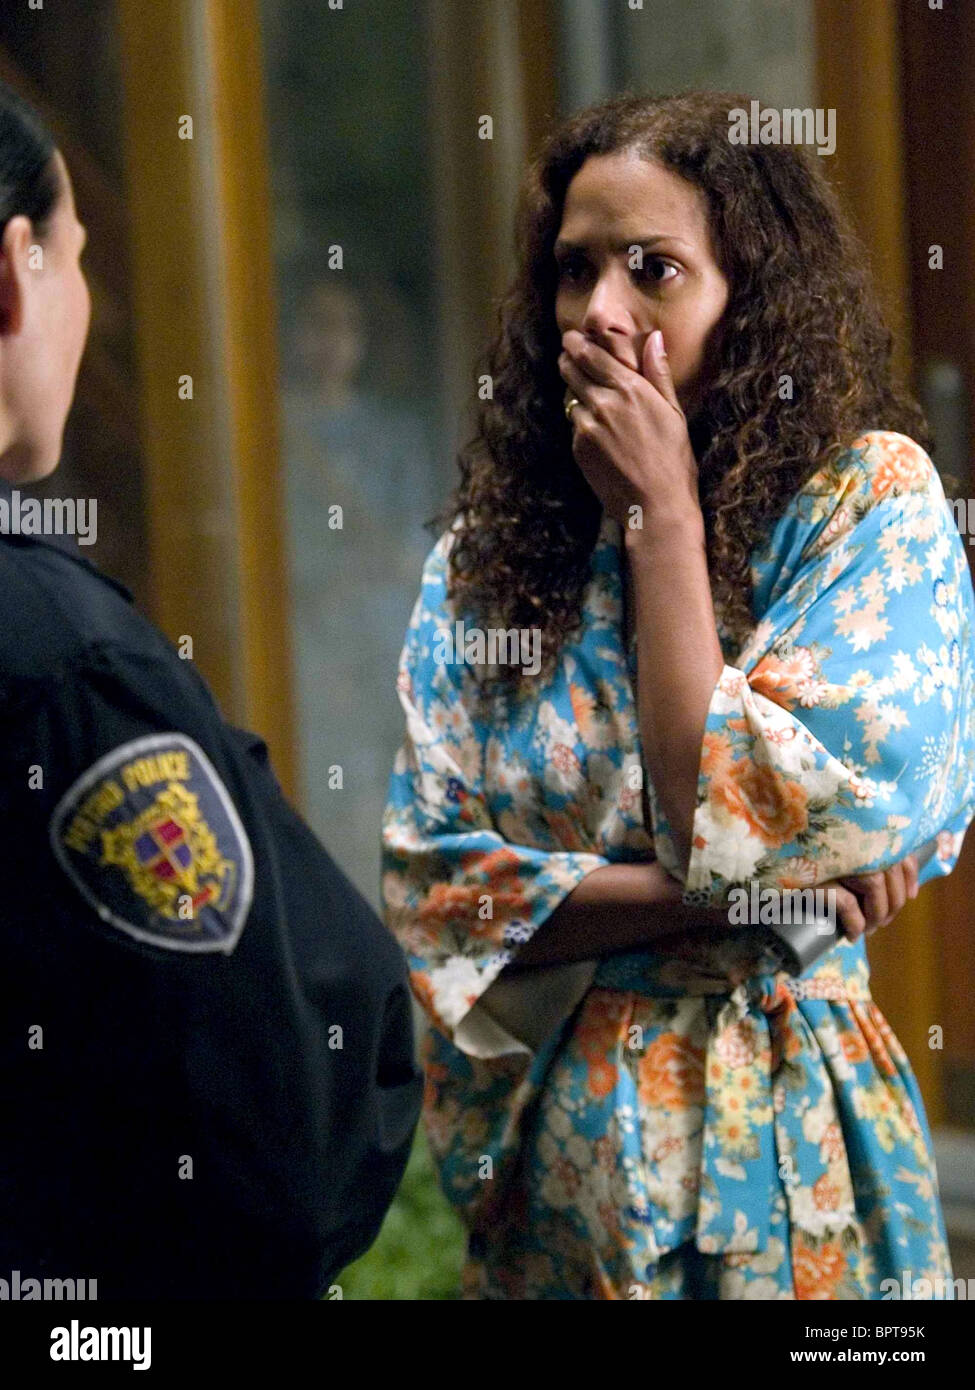 HALLE BERRY THINGS WE LOST IN THE FIRE (2007) Stock Photo